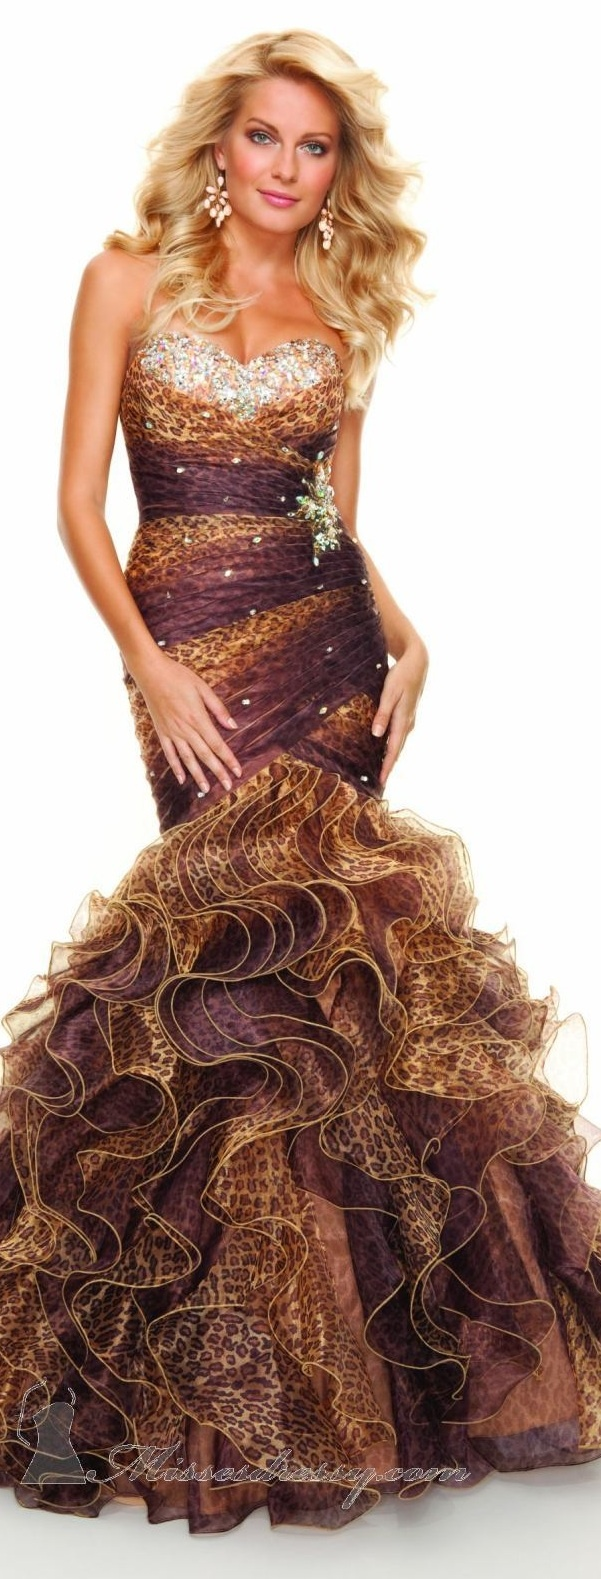 102 best leopard print wedding images on pinterest animal prints mori lee high couture 2013 over the top but awesome color combination find this pin and more on leopard print wedding ombrellifo Choice Image